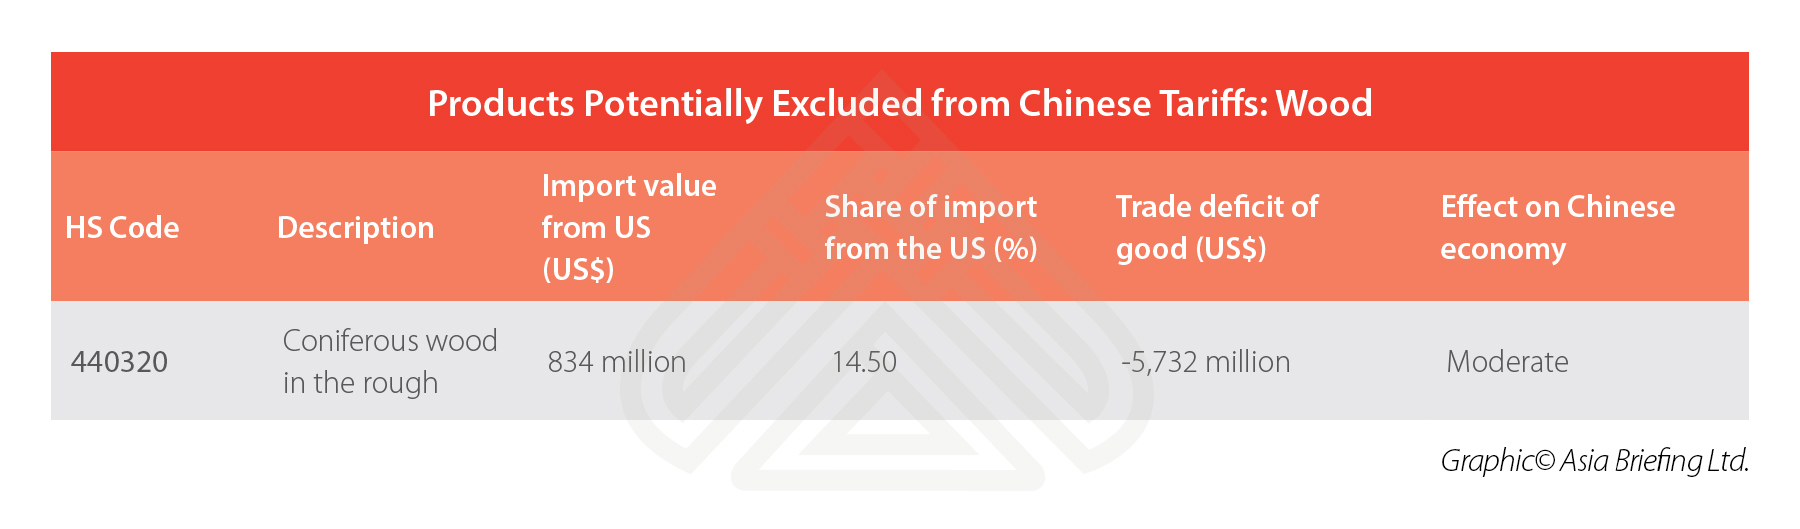 china-wood-imports-US-tariffs